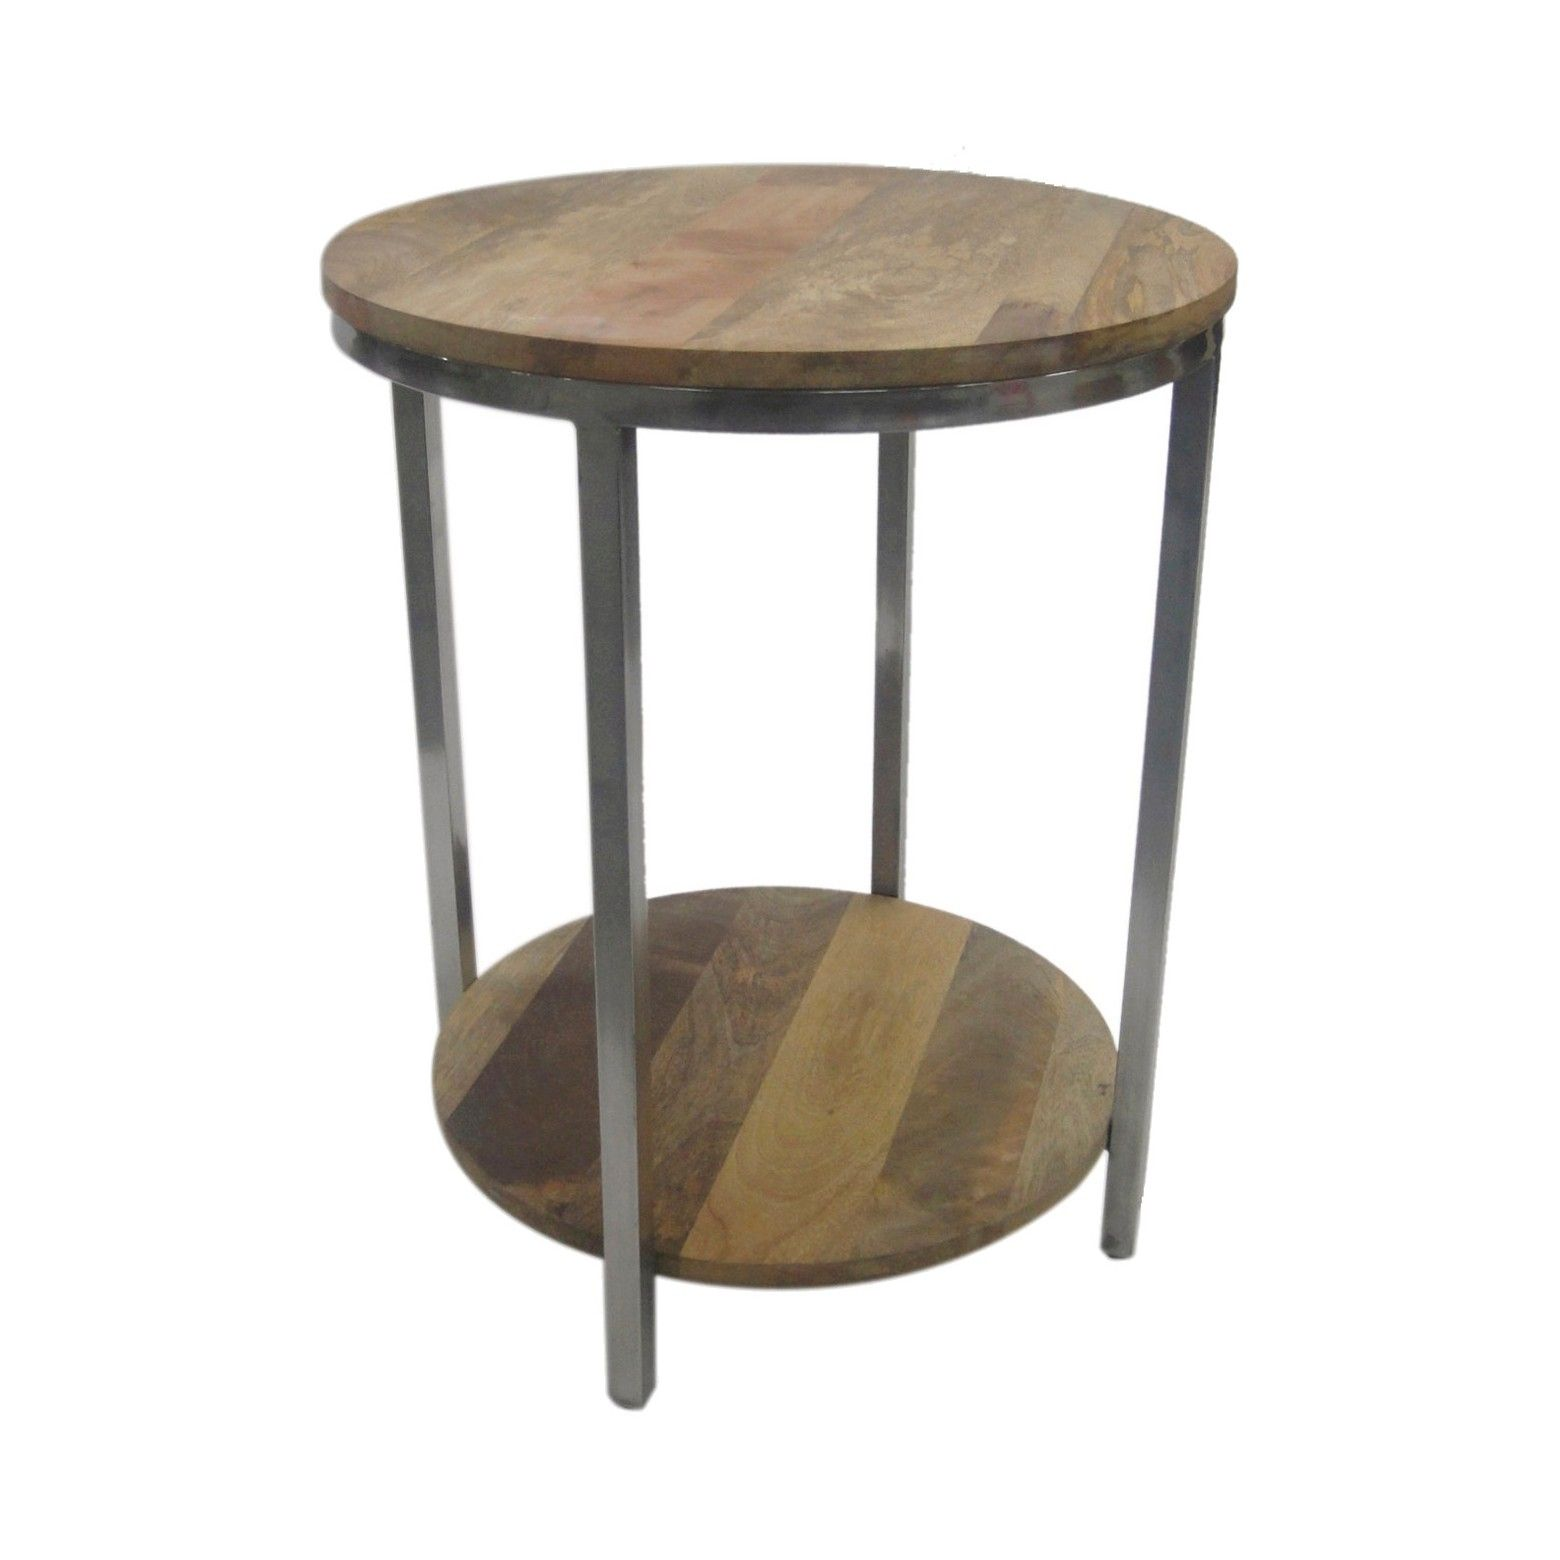 threshold berwyn end table metal and wood rustic brown minimal owings accent target home goods lamp sets set noguchi coffee candle centerpieces for tables green painted antique